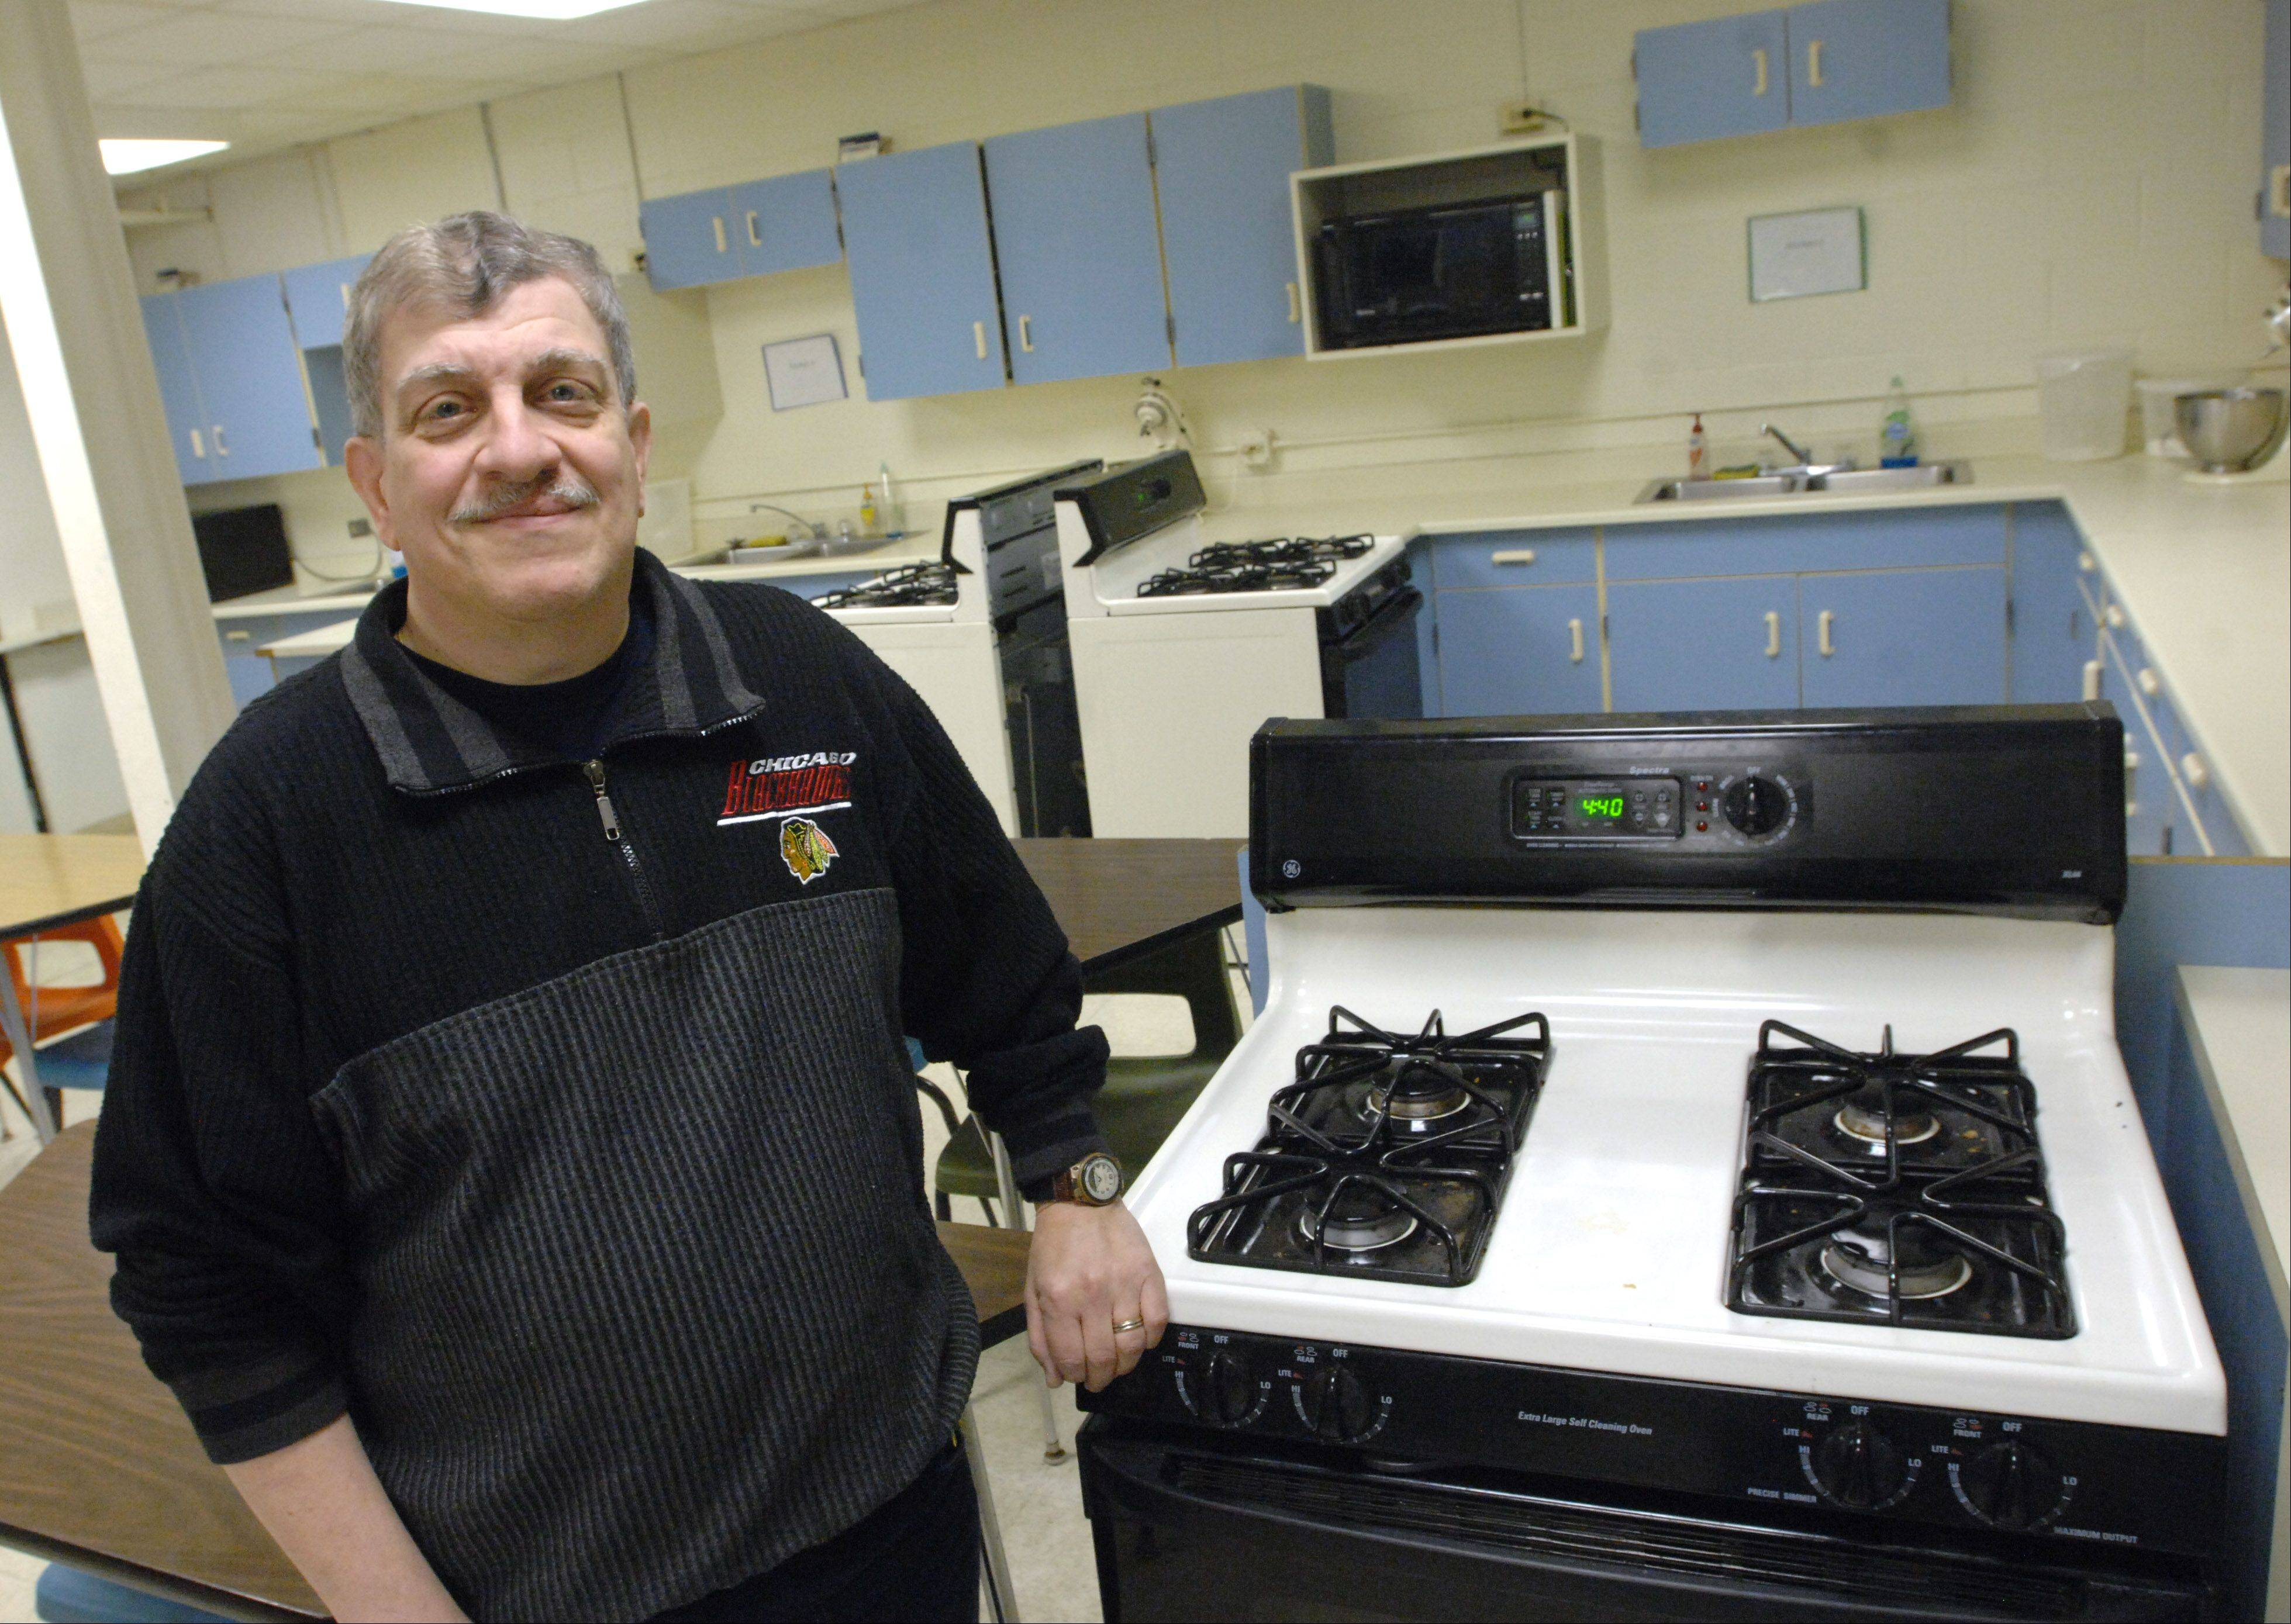 Chuck Federici of Hanover Park will compete in Round 2 of the Cook of the Week Challenge.